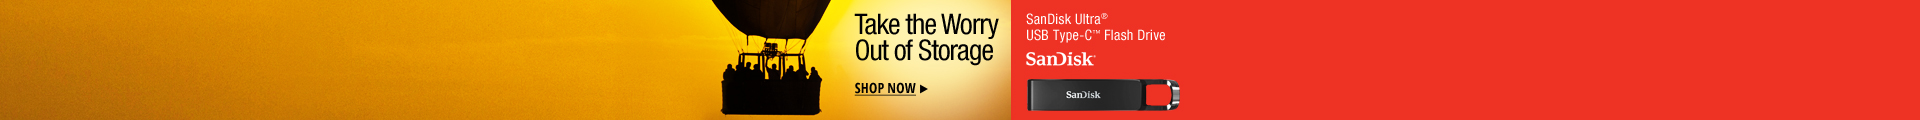 Take the Worry Out of Storage